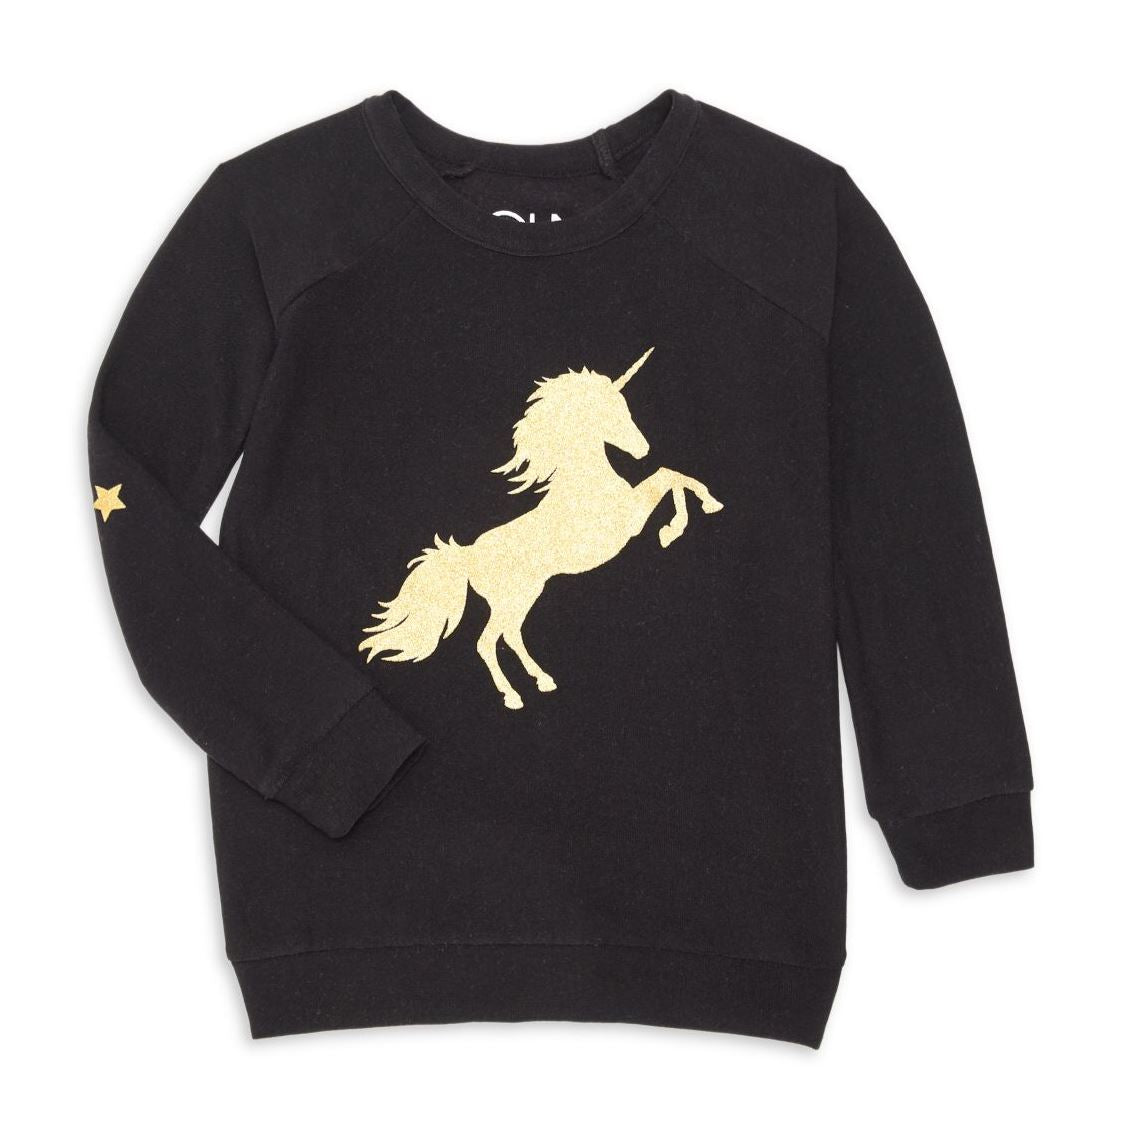 CHTW131-CHK1318 Chaser - Girls Golden Unicorn Black Pullover Long Sleeve Shirts Chaser